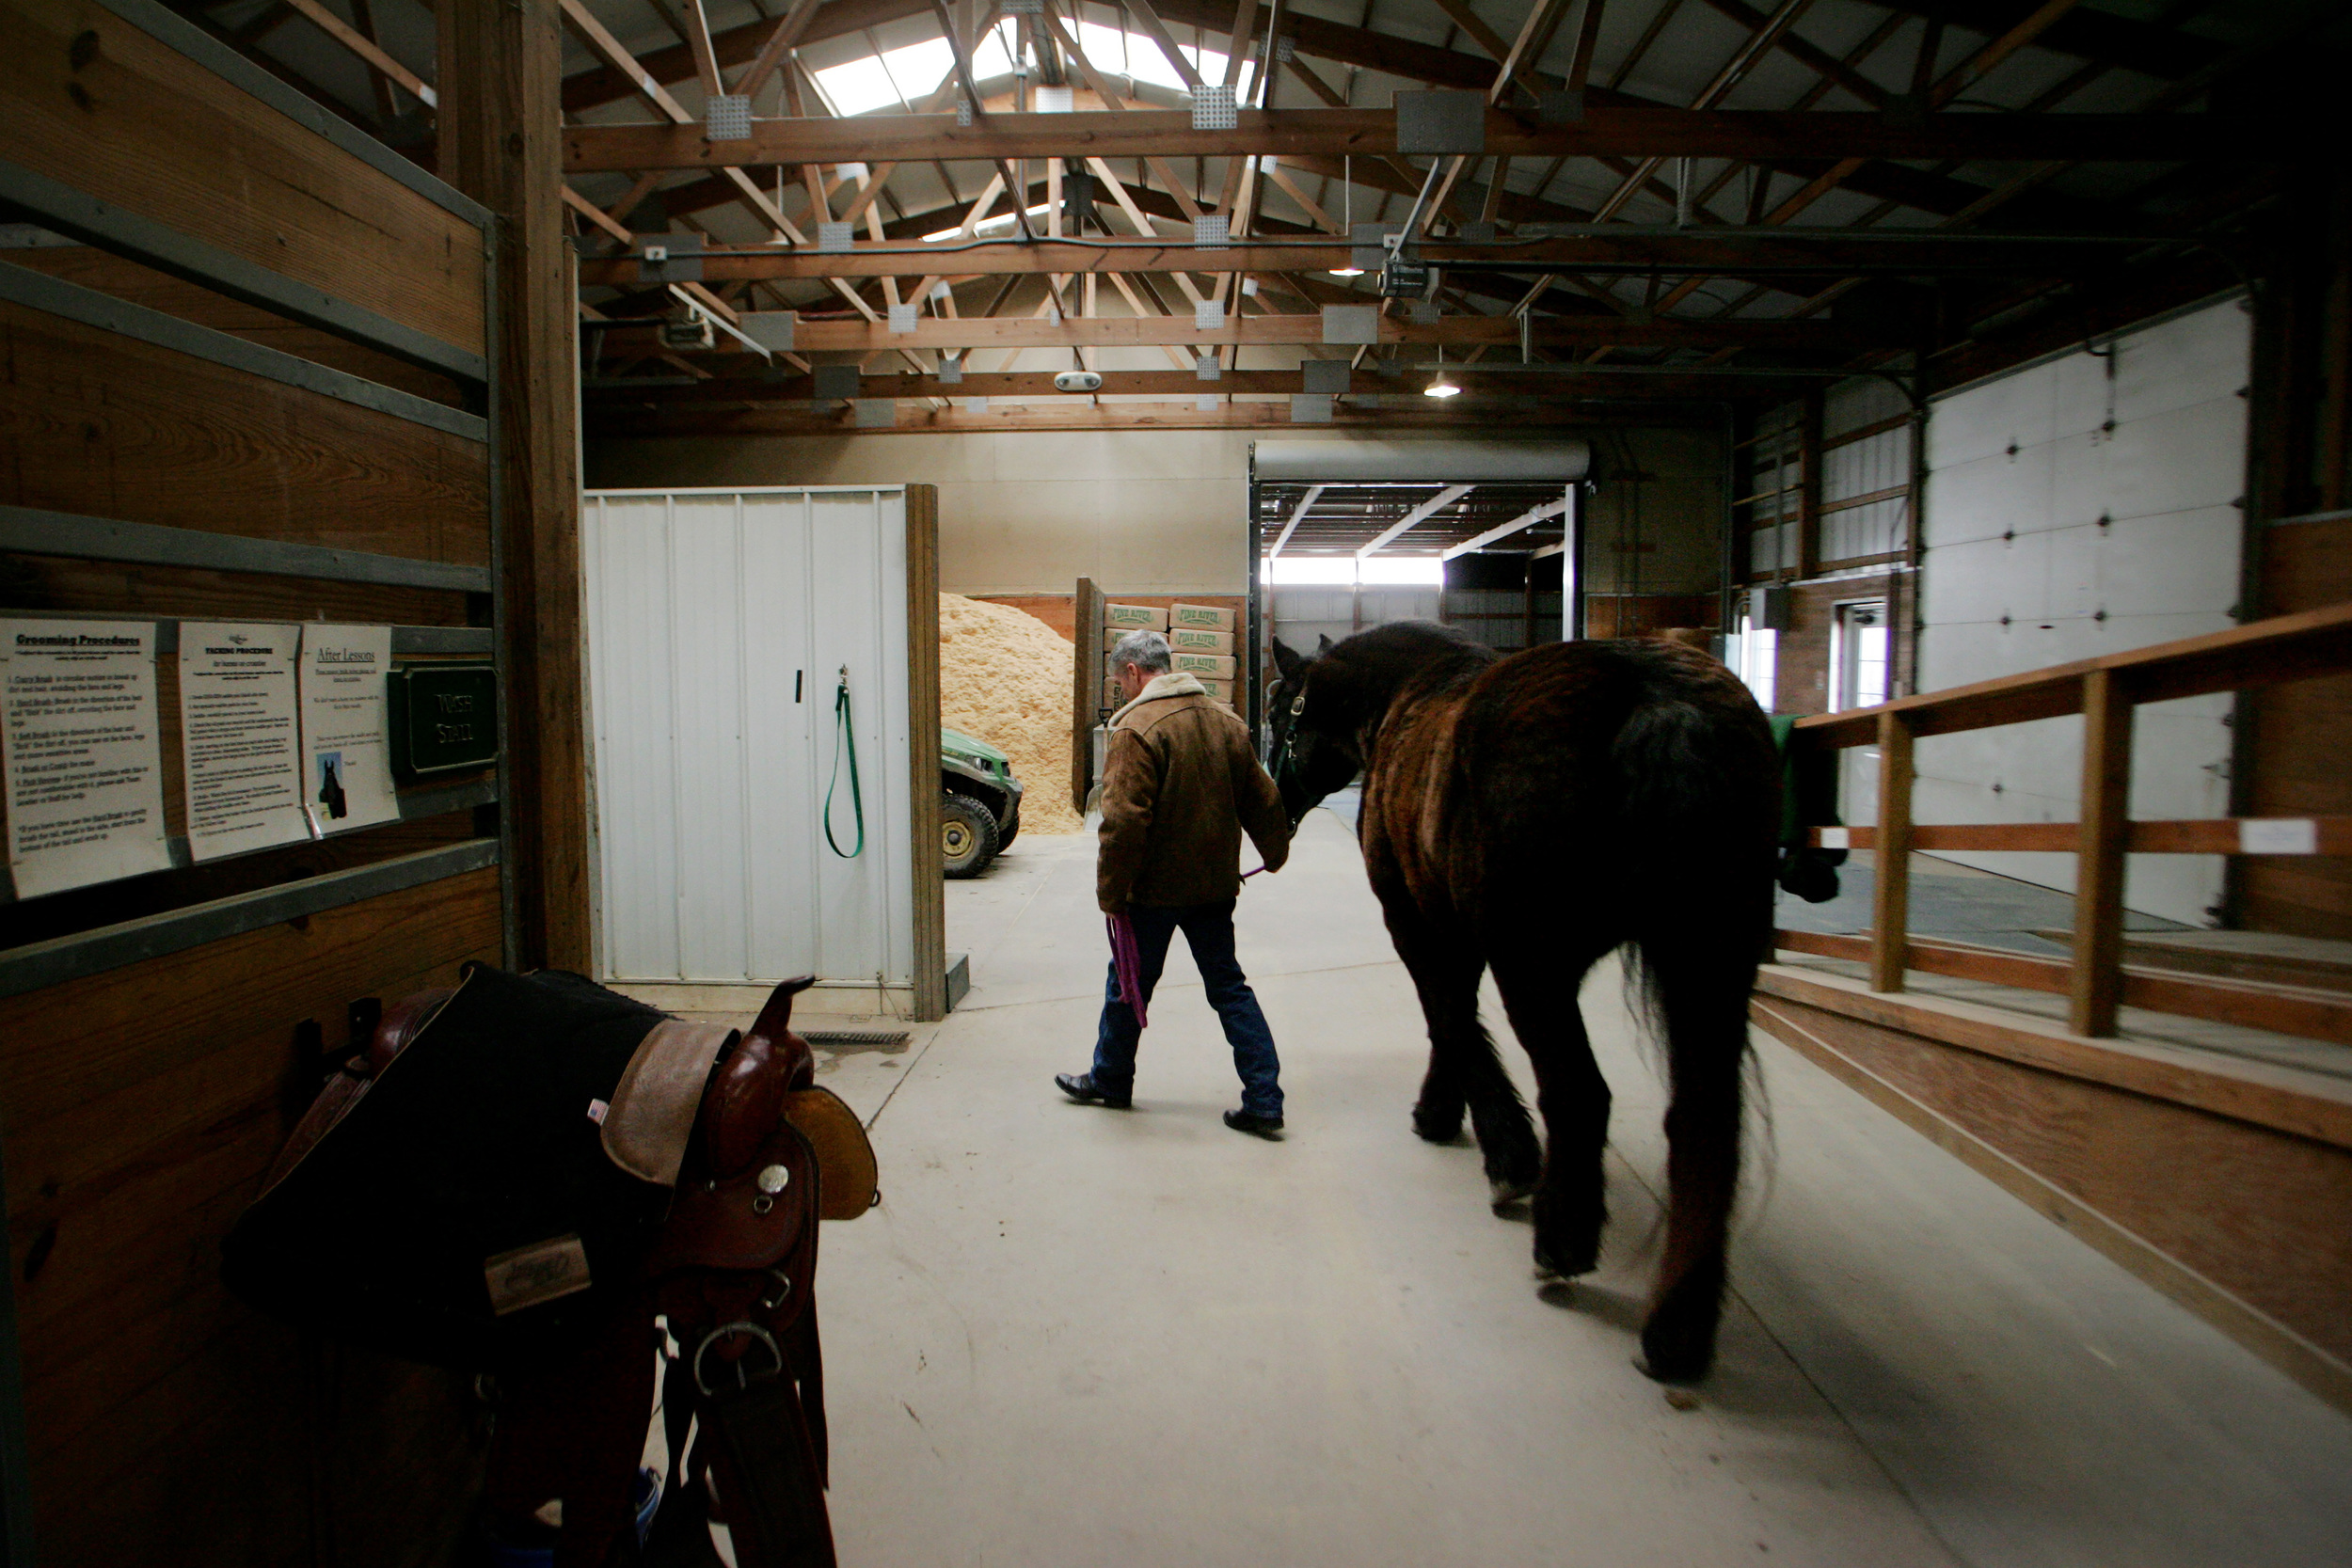 Chris leads Jack to where he'll be brushed and then saddled, Saturday, Jan. 31, 2015.